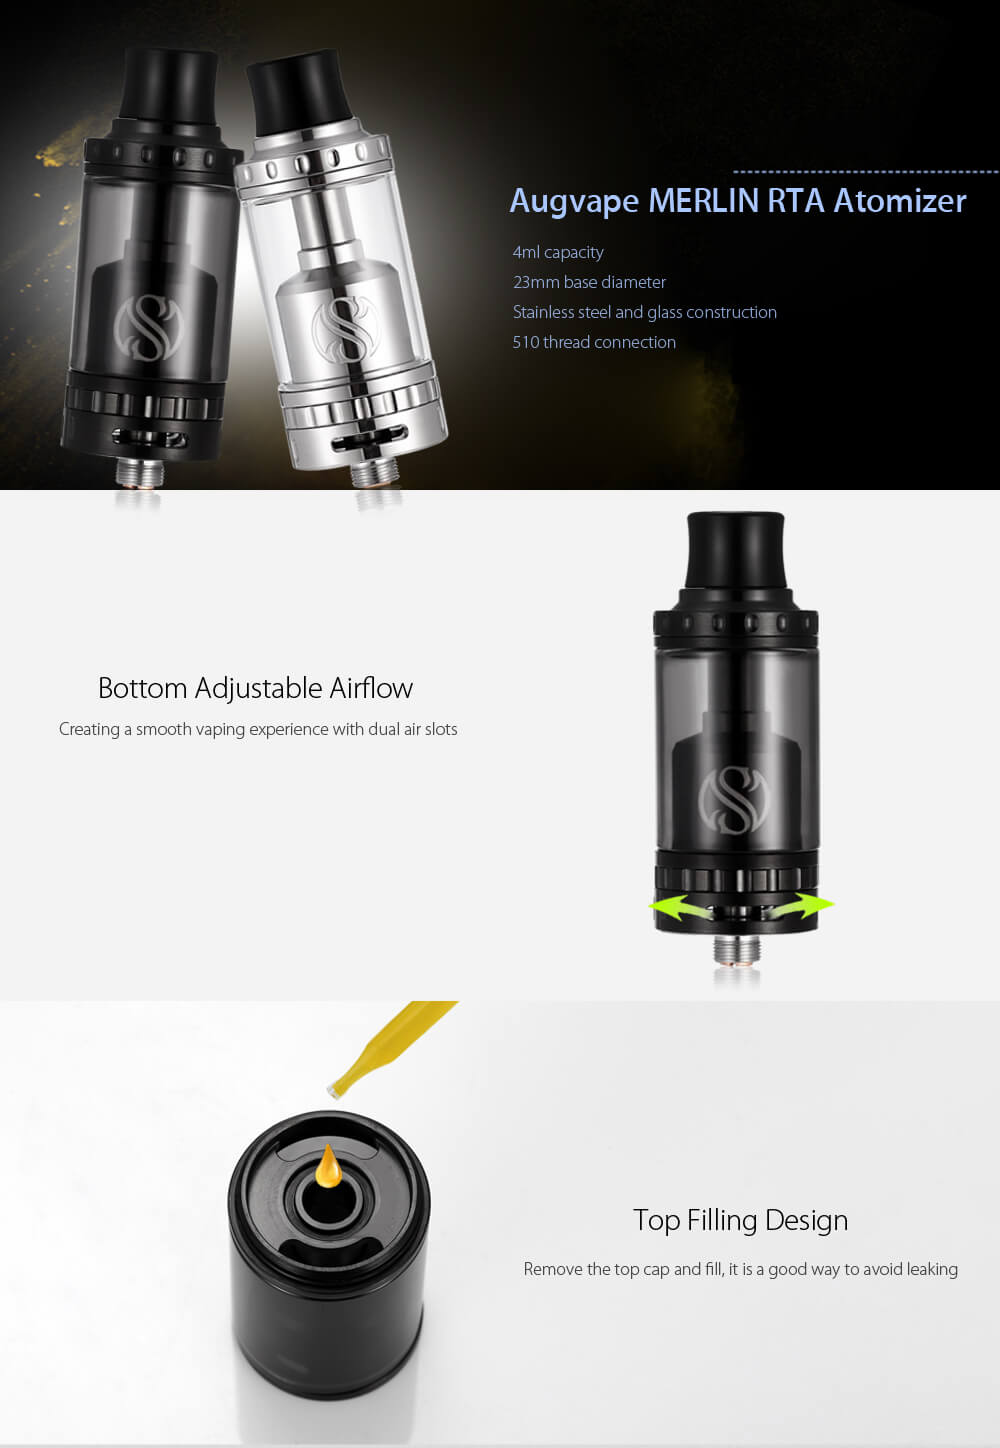 Original Augvape MERLIN RTA 4ml Atomizer with Top Filling / Juice Flow Control for E Cigarette